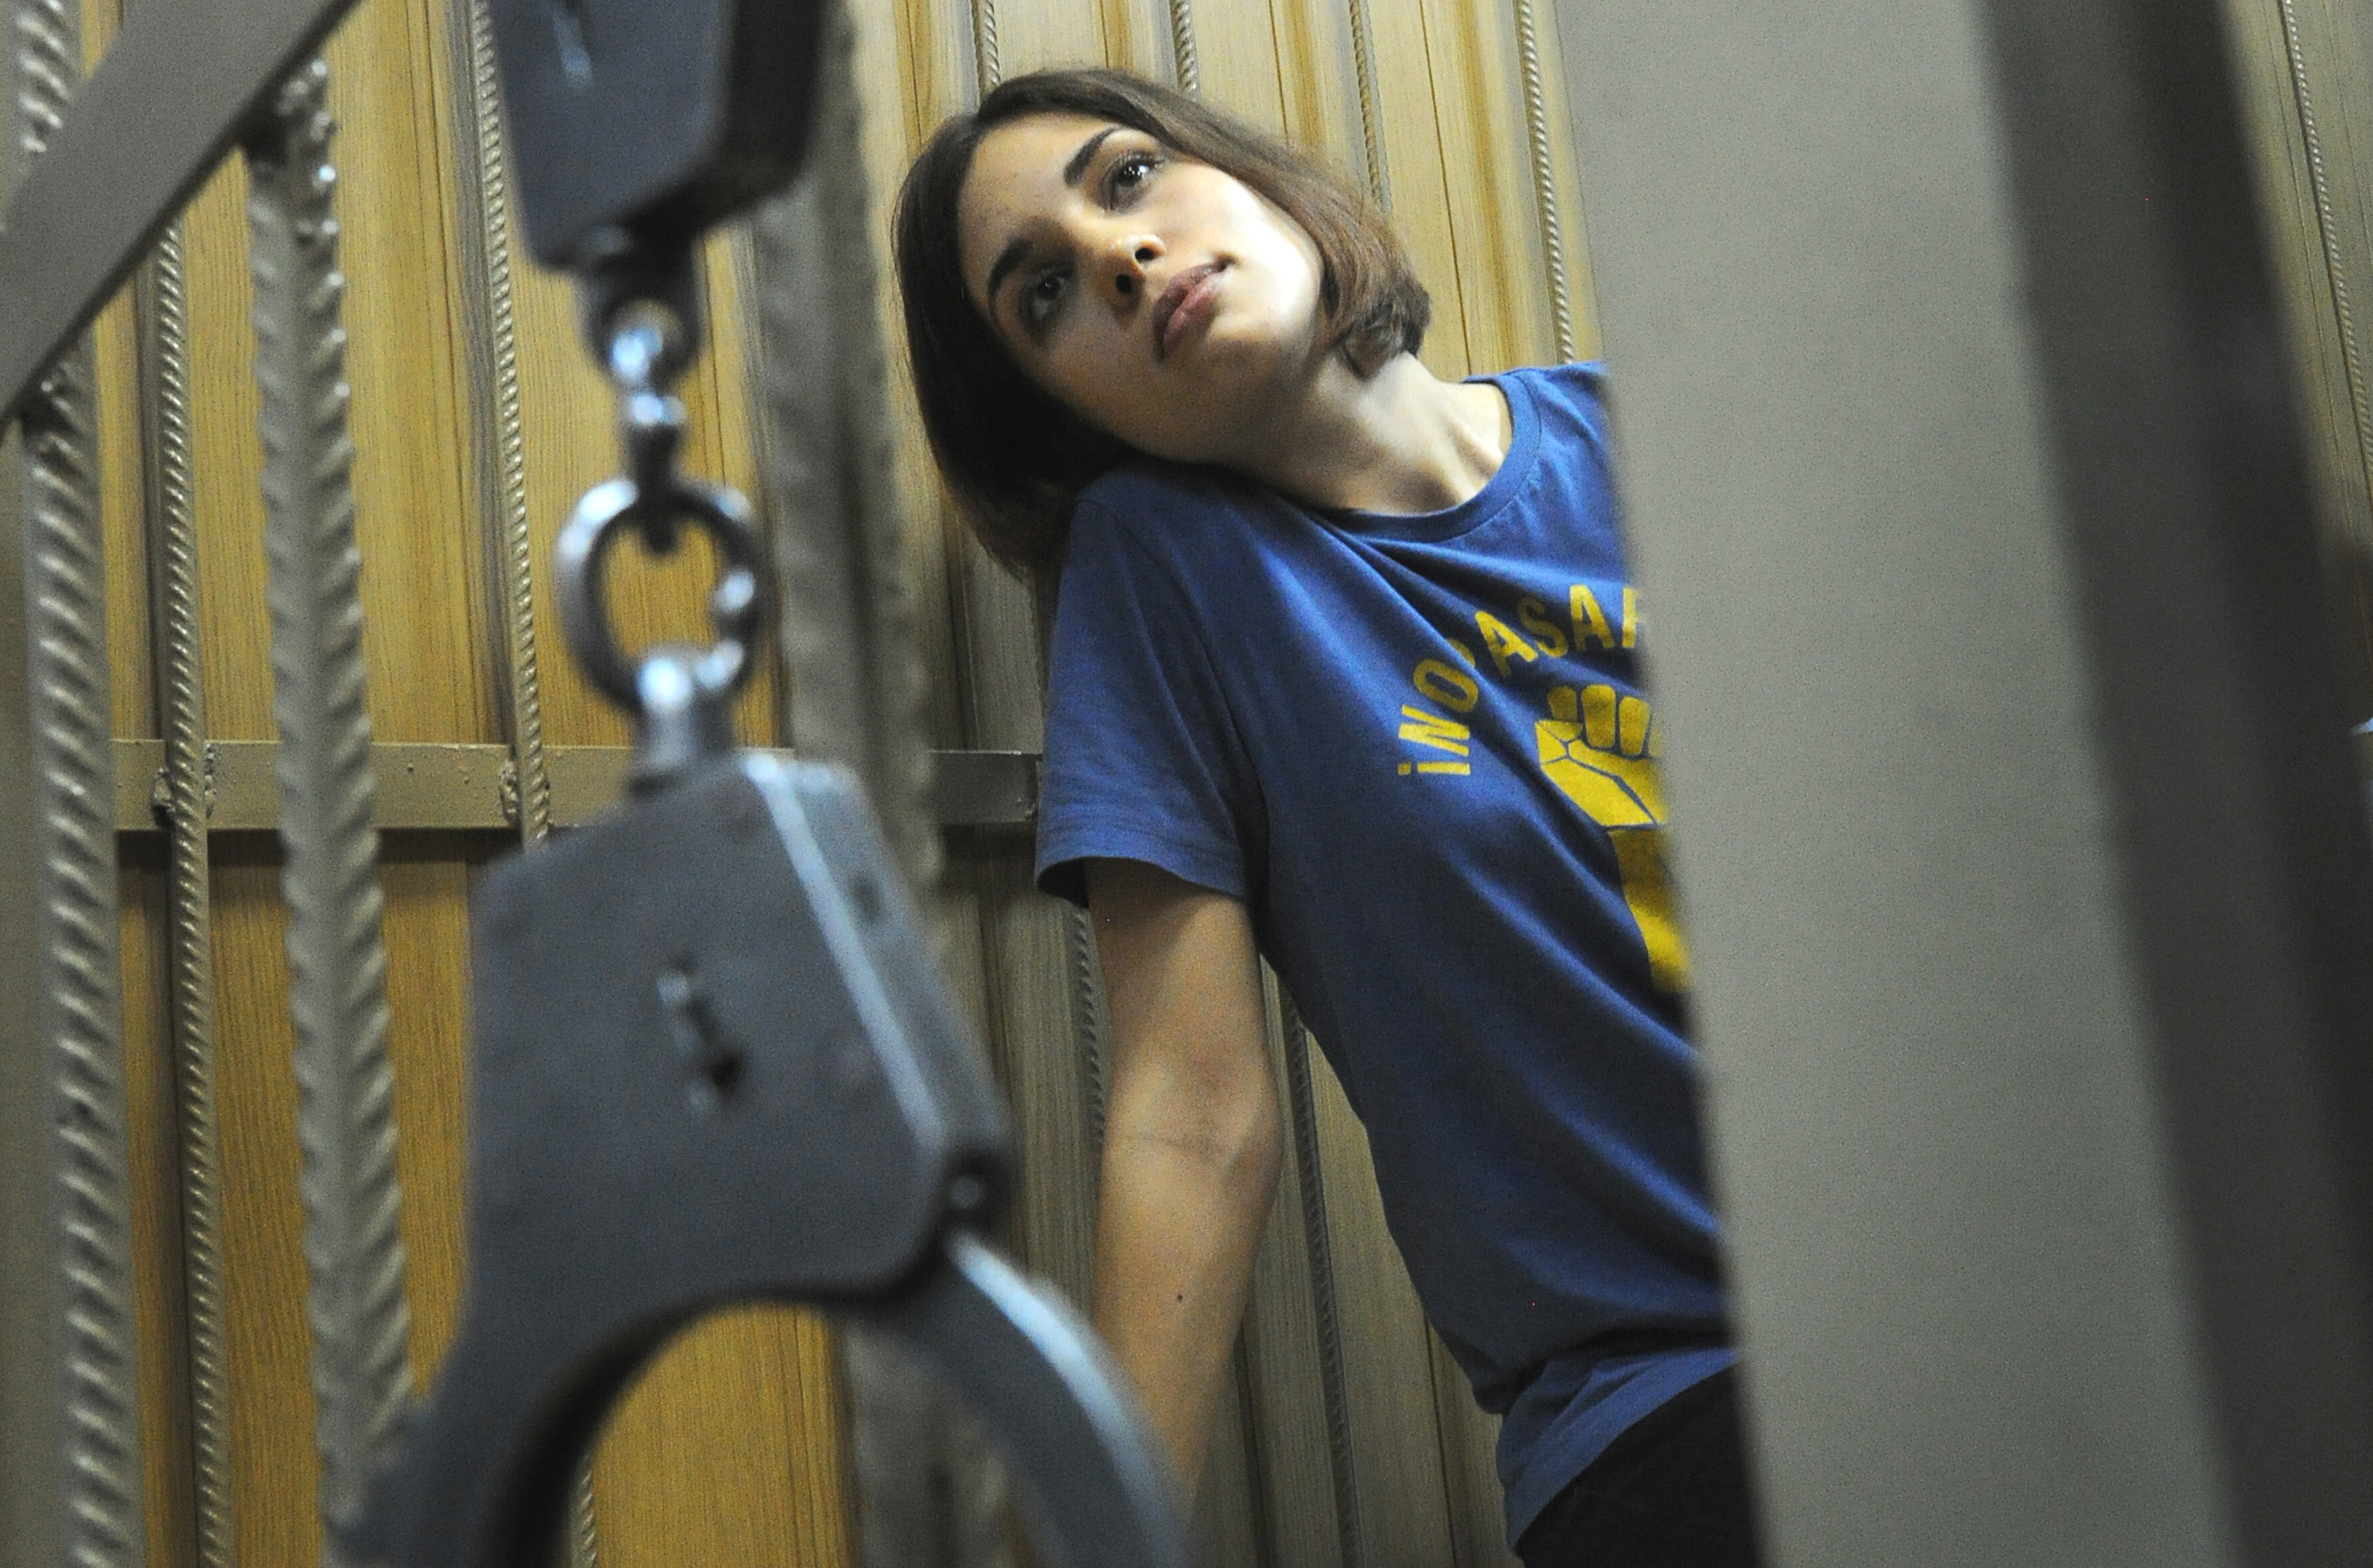 Today, Pussy Riots Nadya Tolokonnikova was Detained by